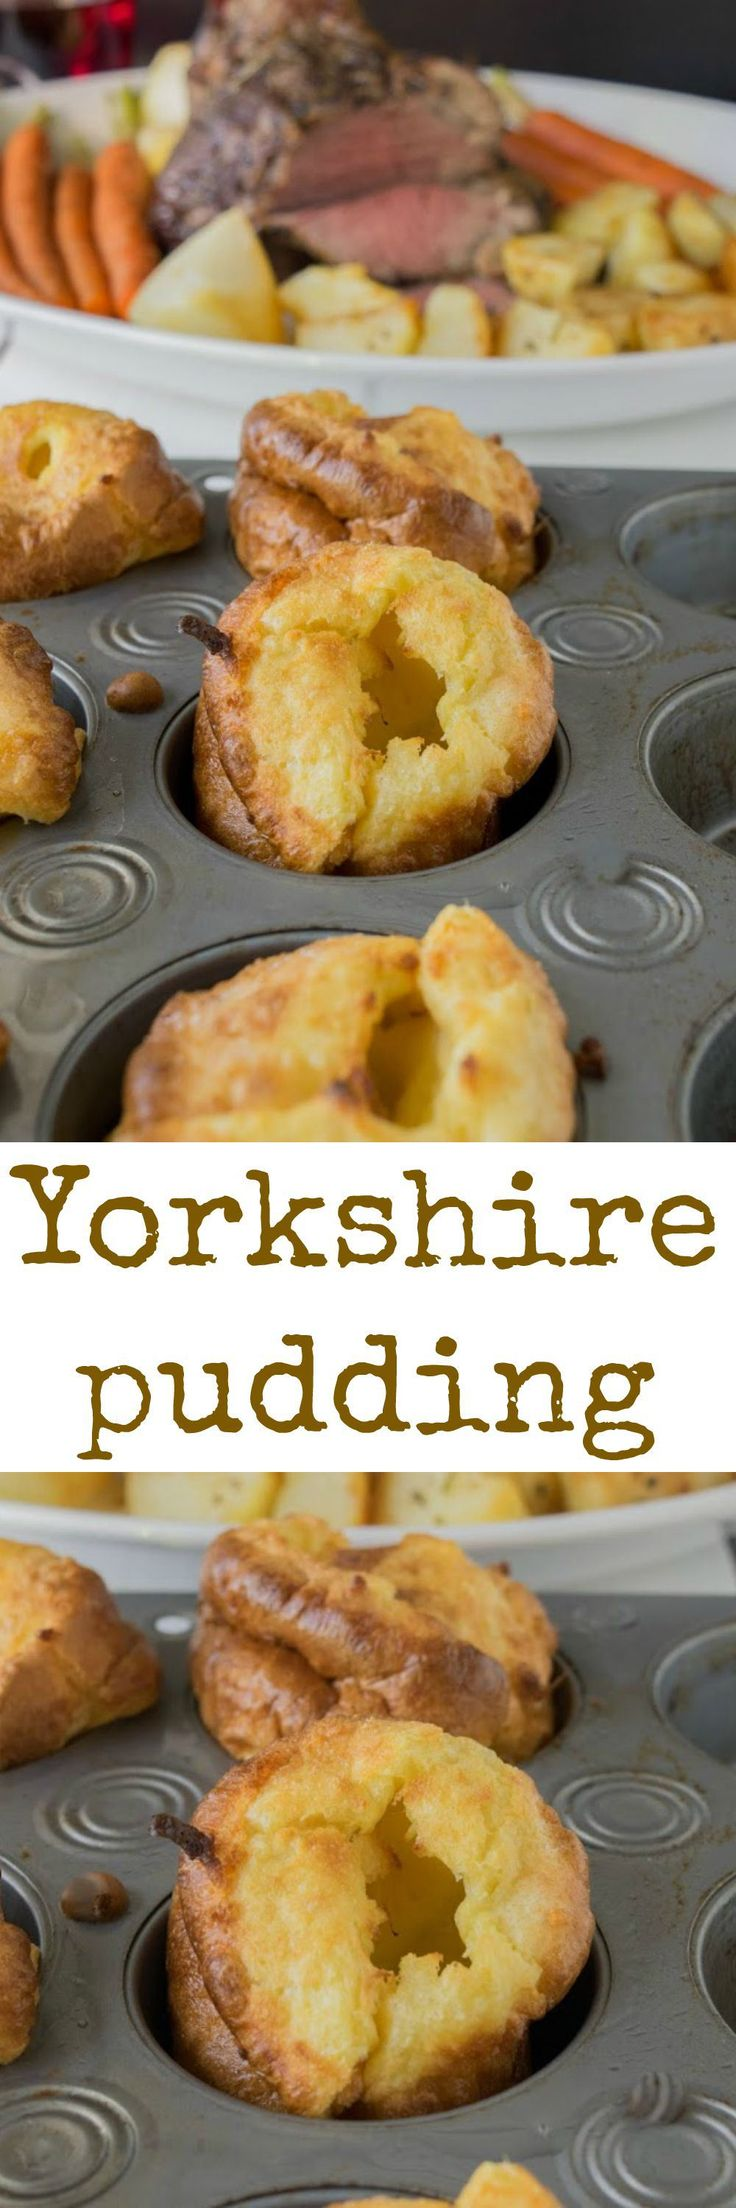 Today is National Yorkshire pudding day. A perfect day to serve this British classic side dish with a delicious Sunday roast and vegetables.